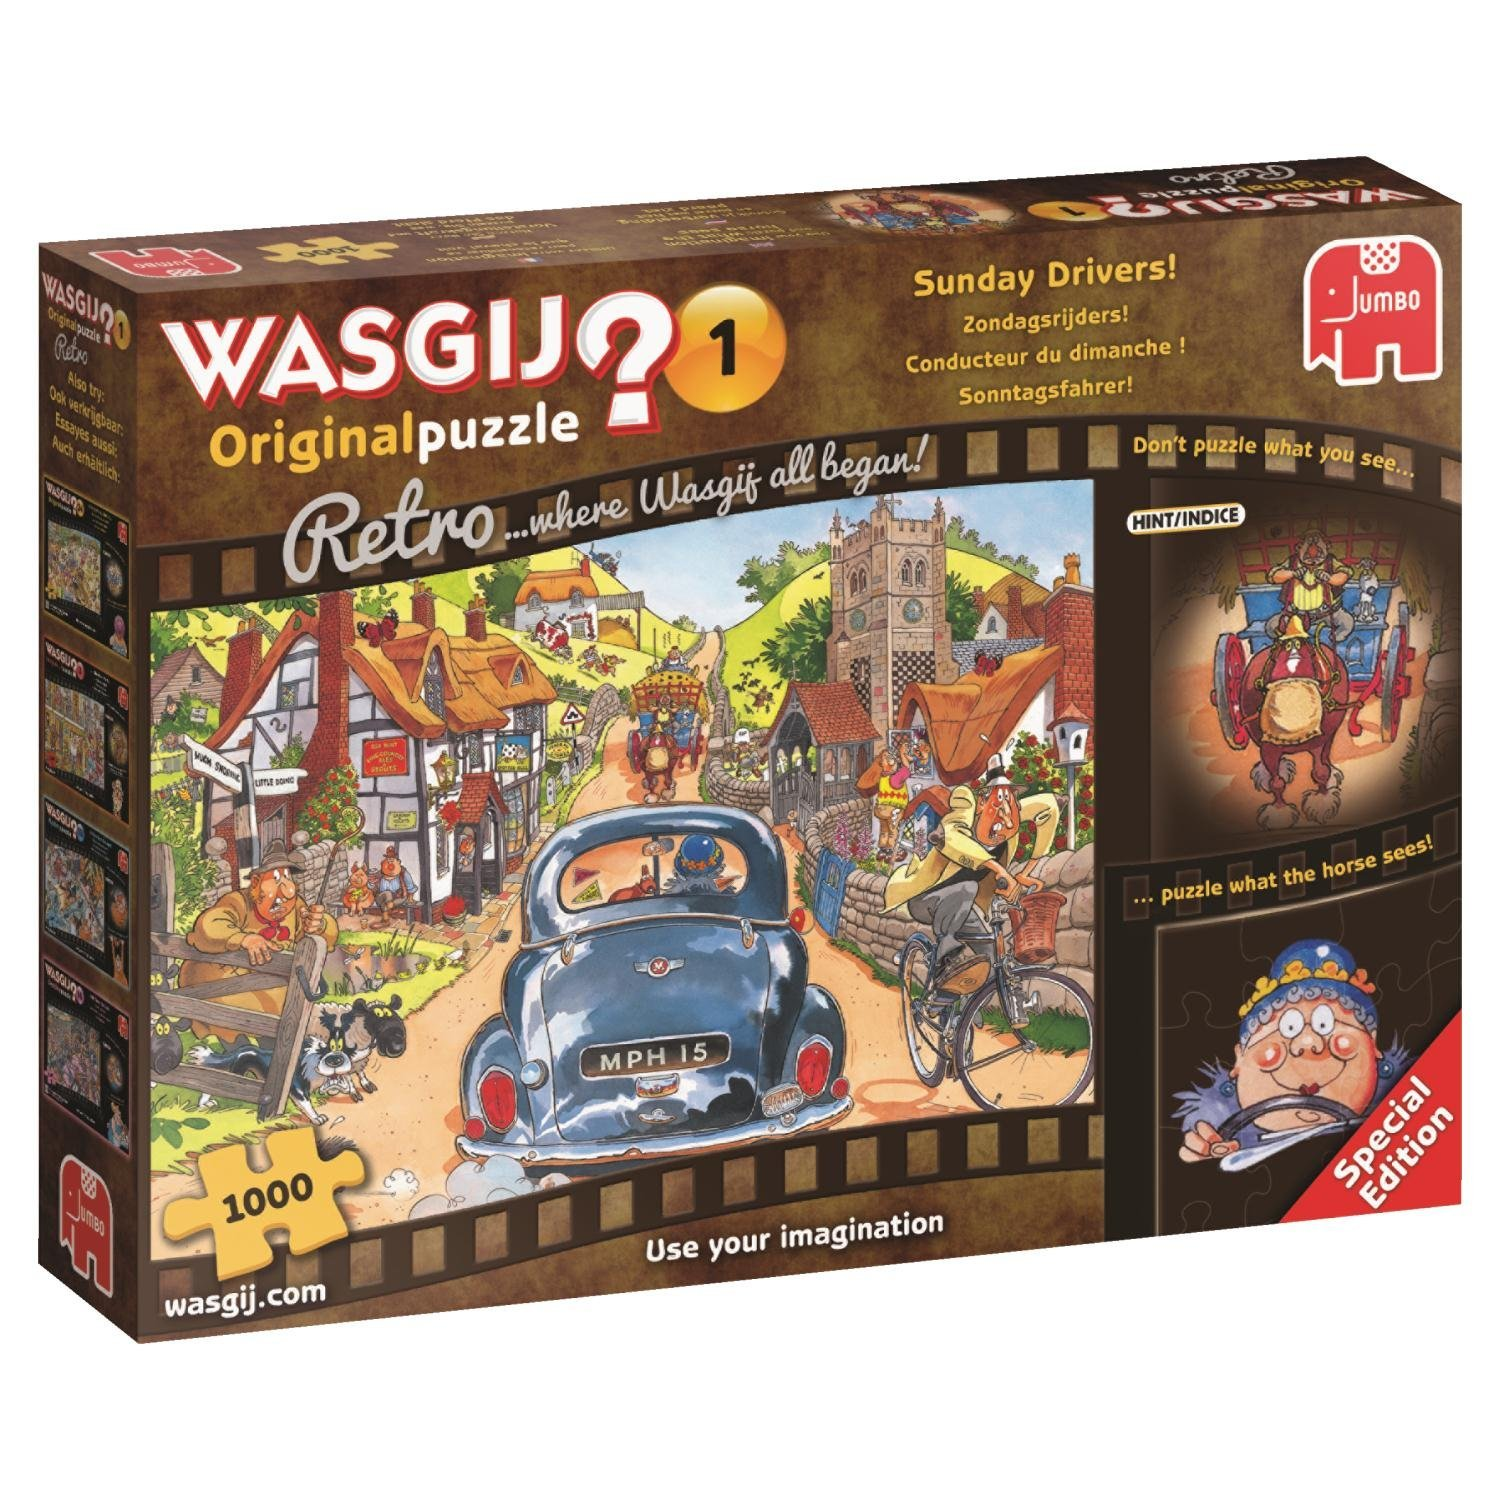 Wasgij Retro Original 1, Sunday Drivers! 1000 Pce Jigsaw Puzzle